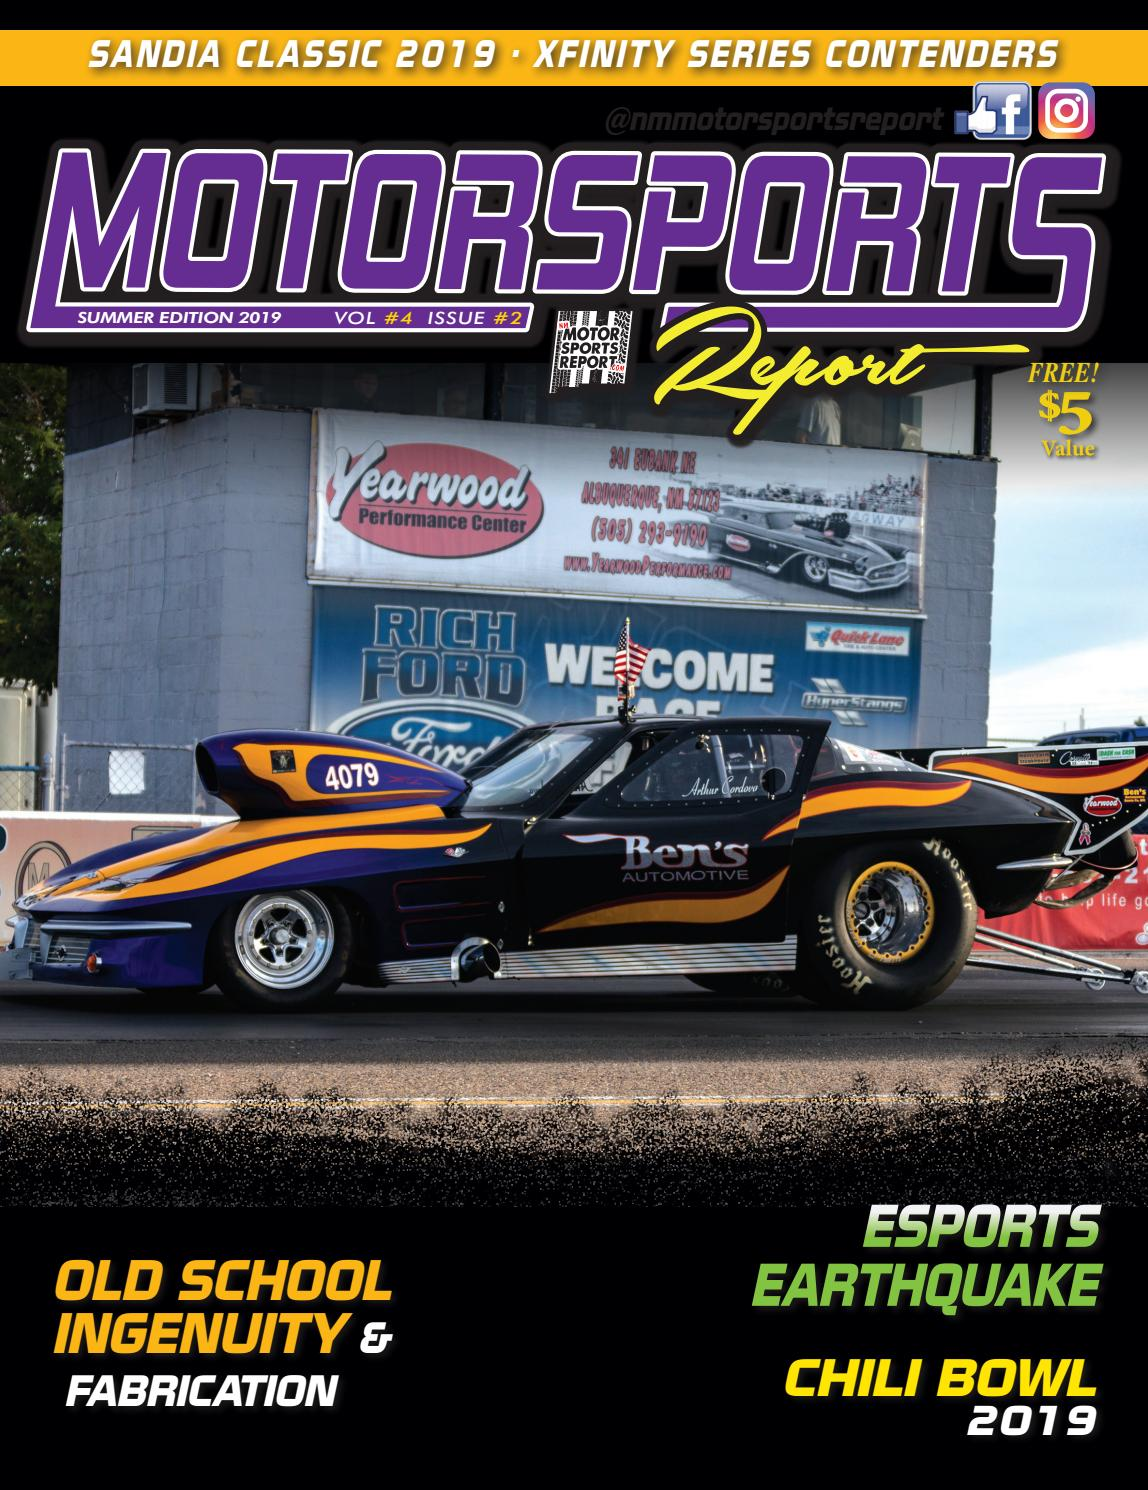 NM Motorsports Report Summer 2019 by DL Graphic Design - issuu